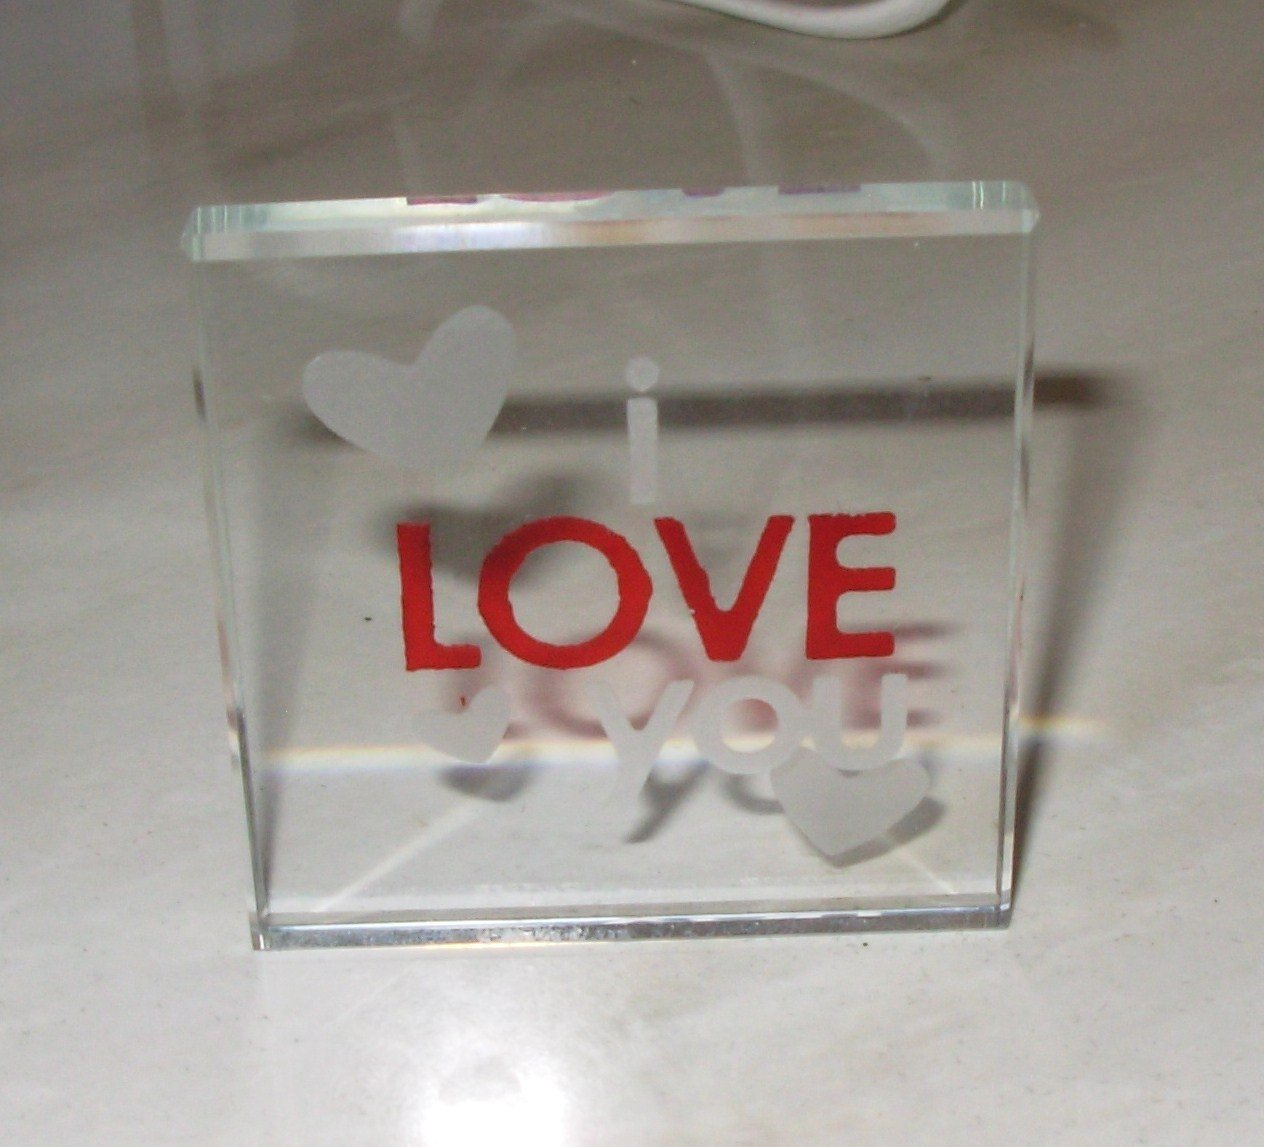 I LOVE YOU CLEAR GLASS PLAQUE NEW GANZ